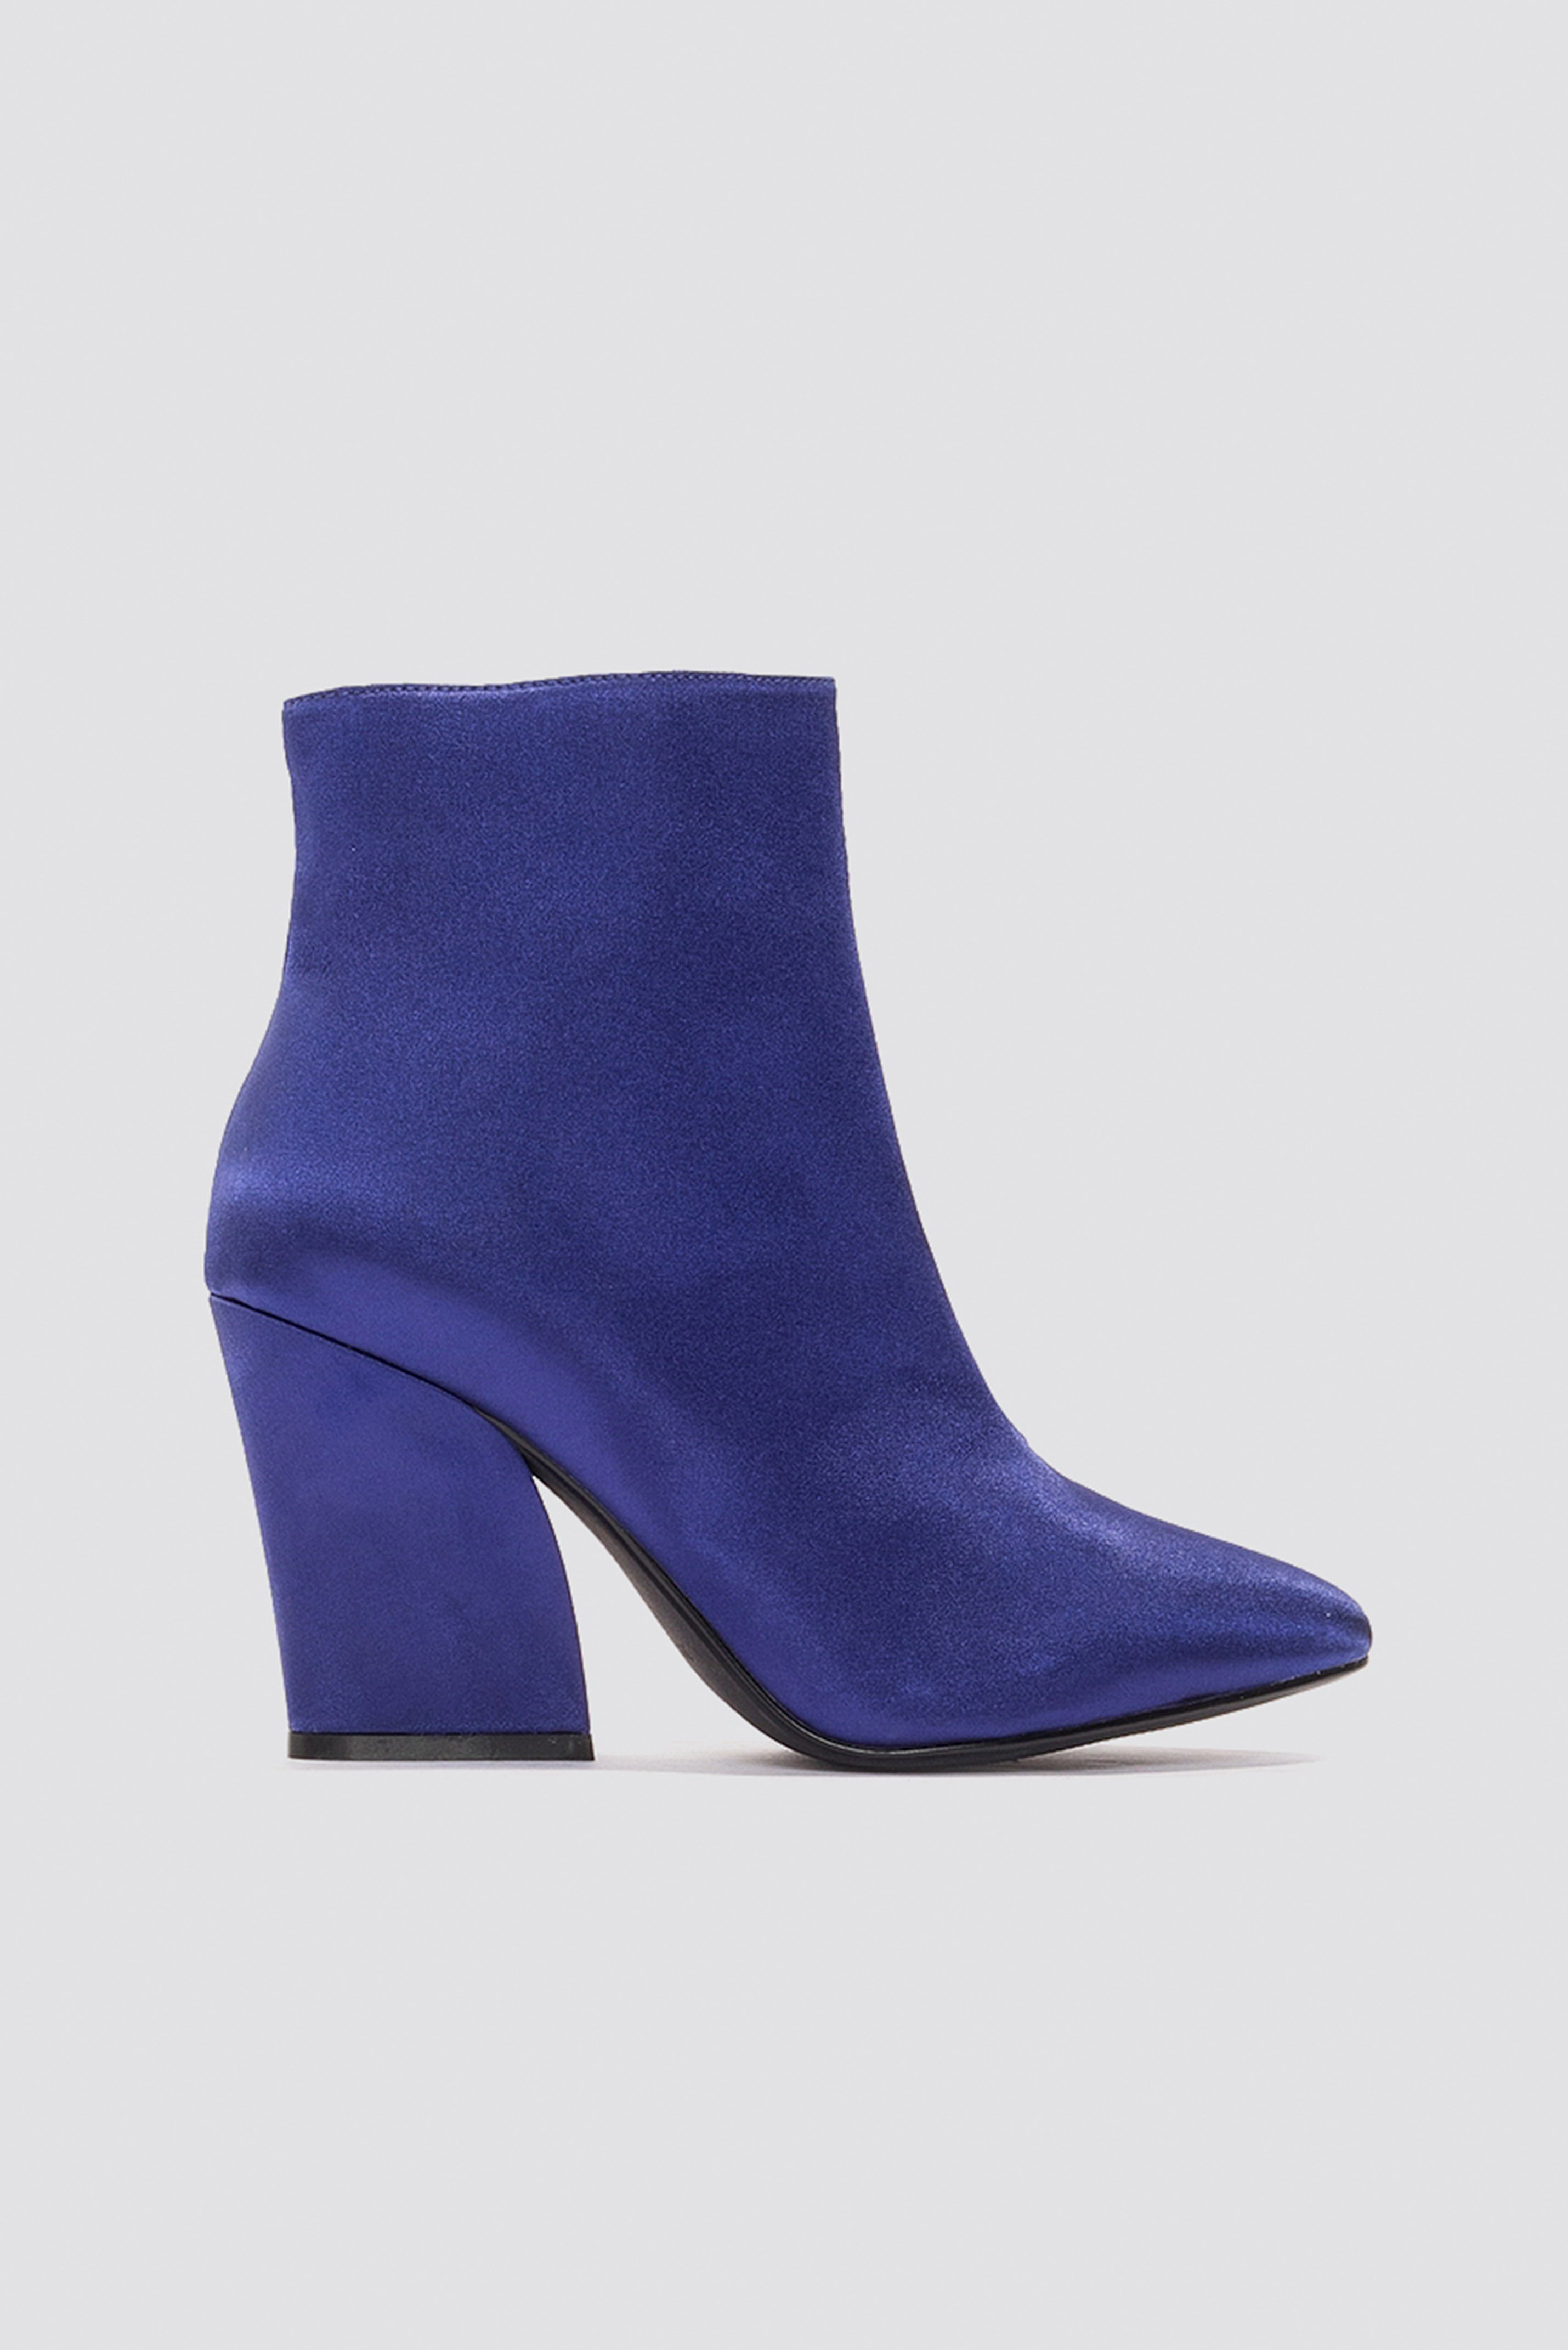 na-kd shoes -  Satin Mid Heel Boots - Blue